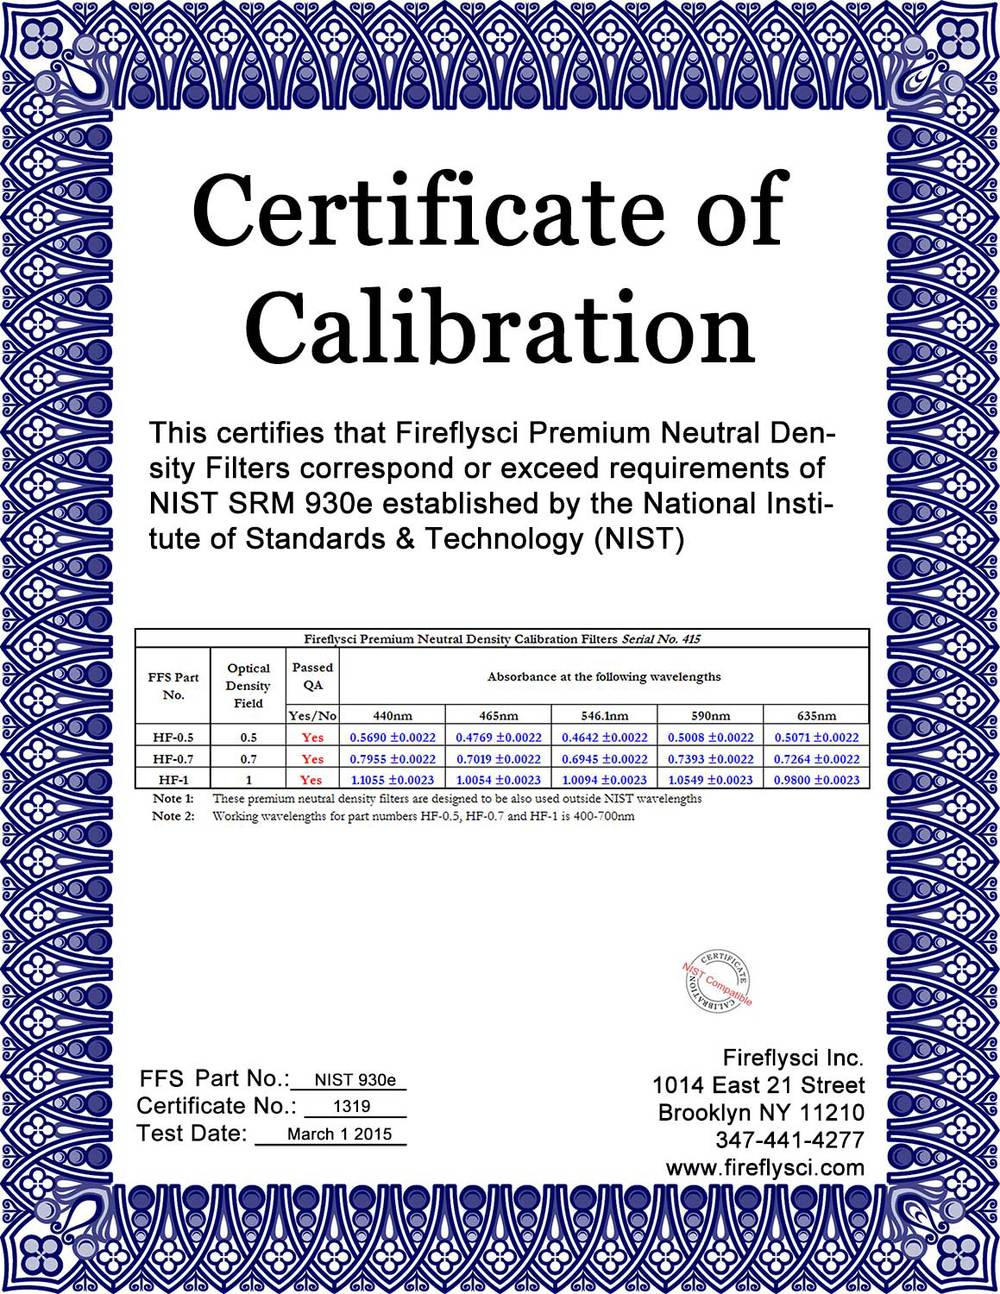 SAMPLE NIST 930E KIT CERTIFICATE OF CALIBRATION